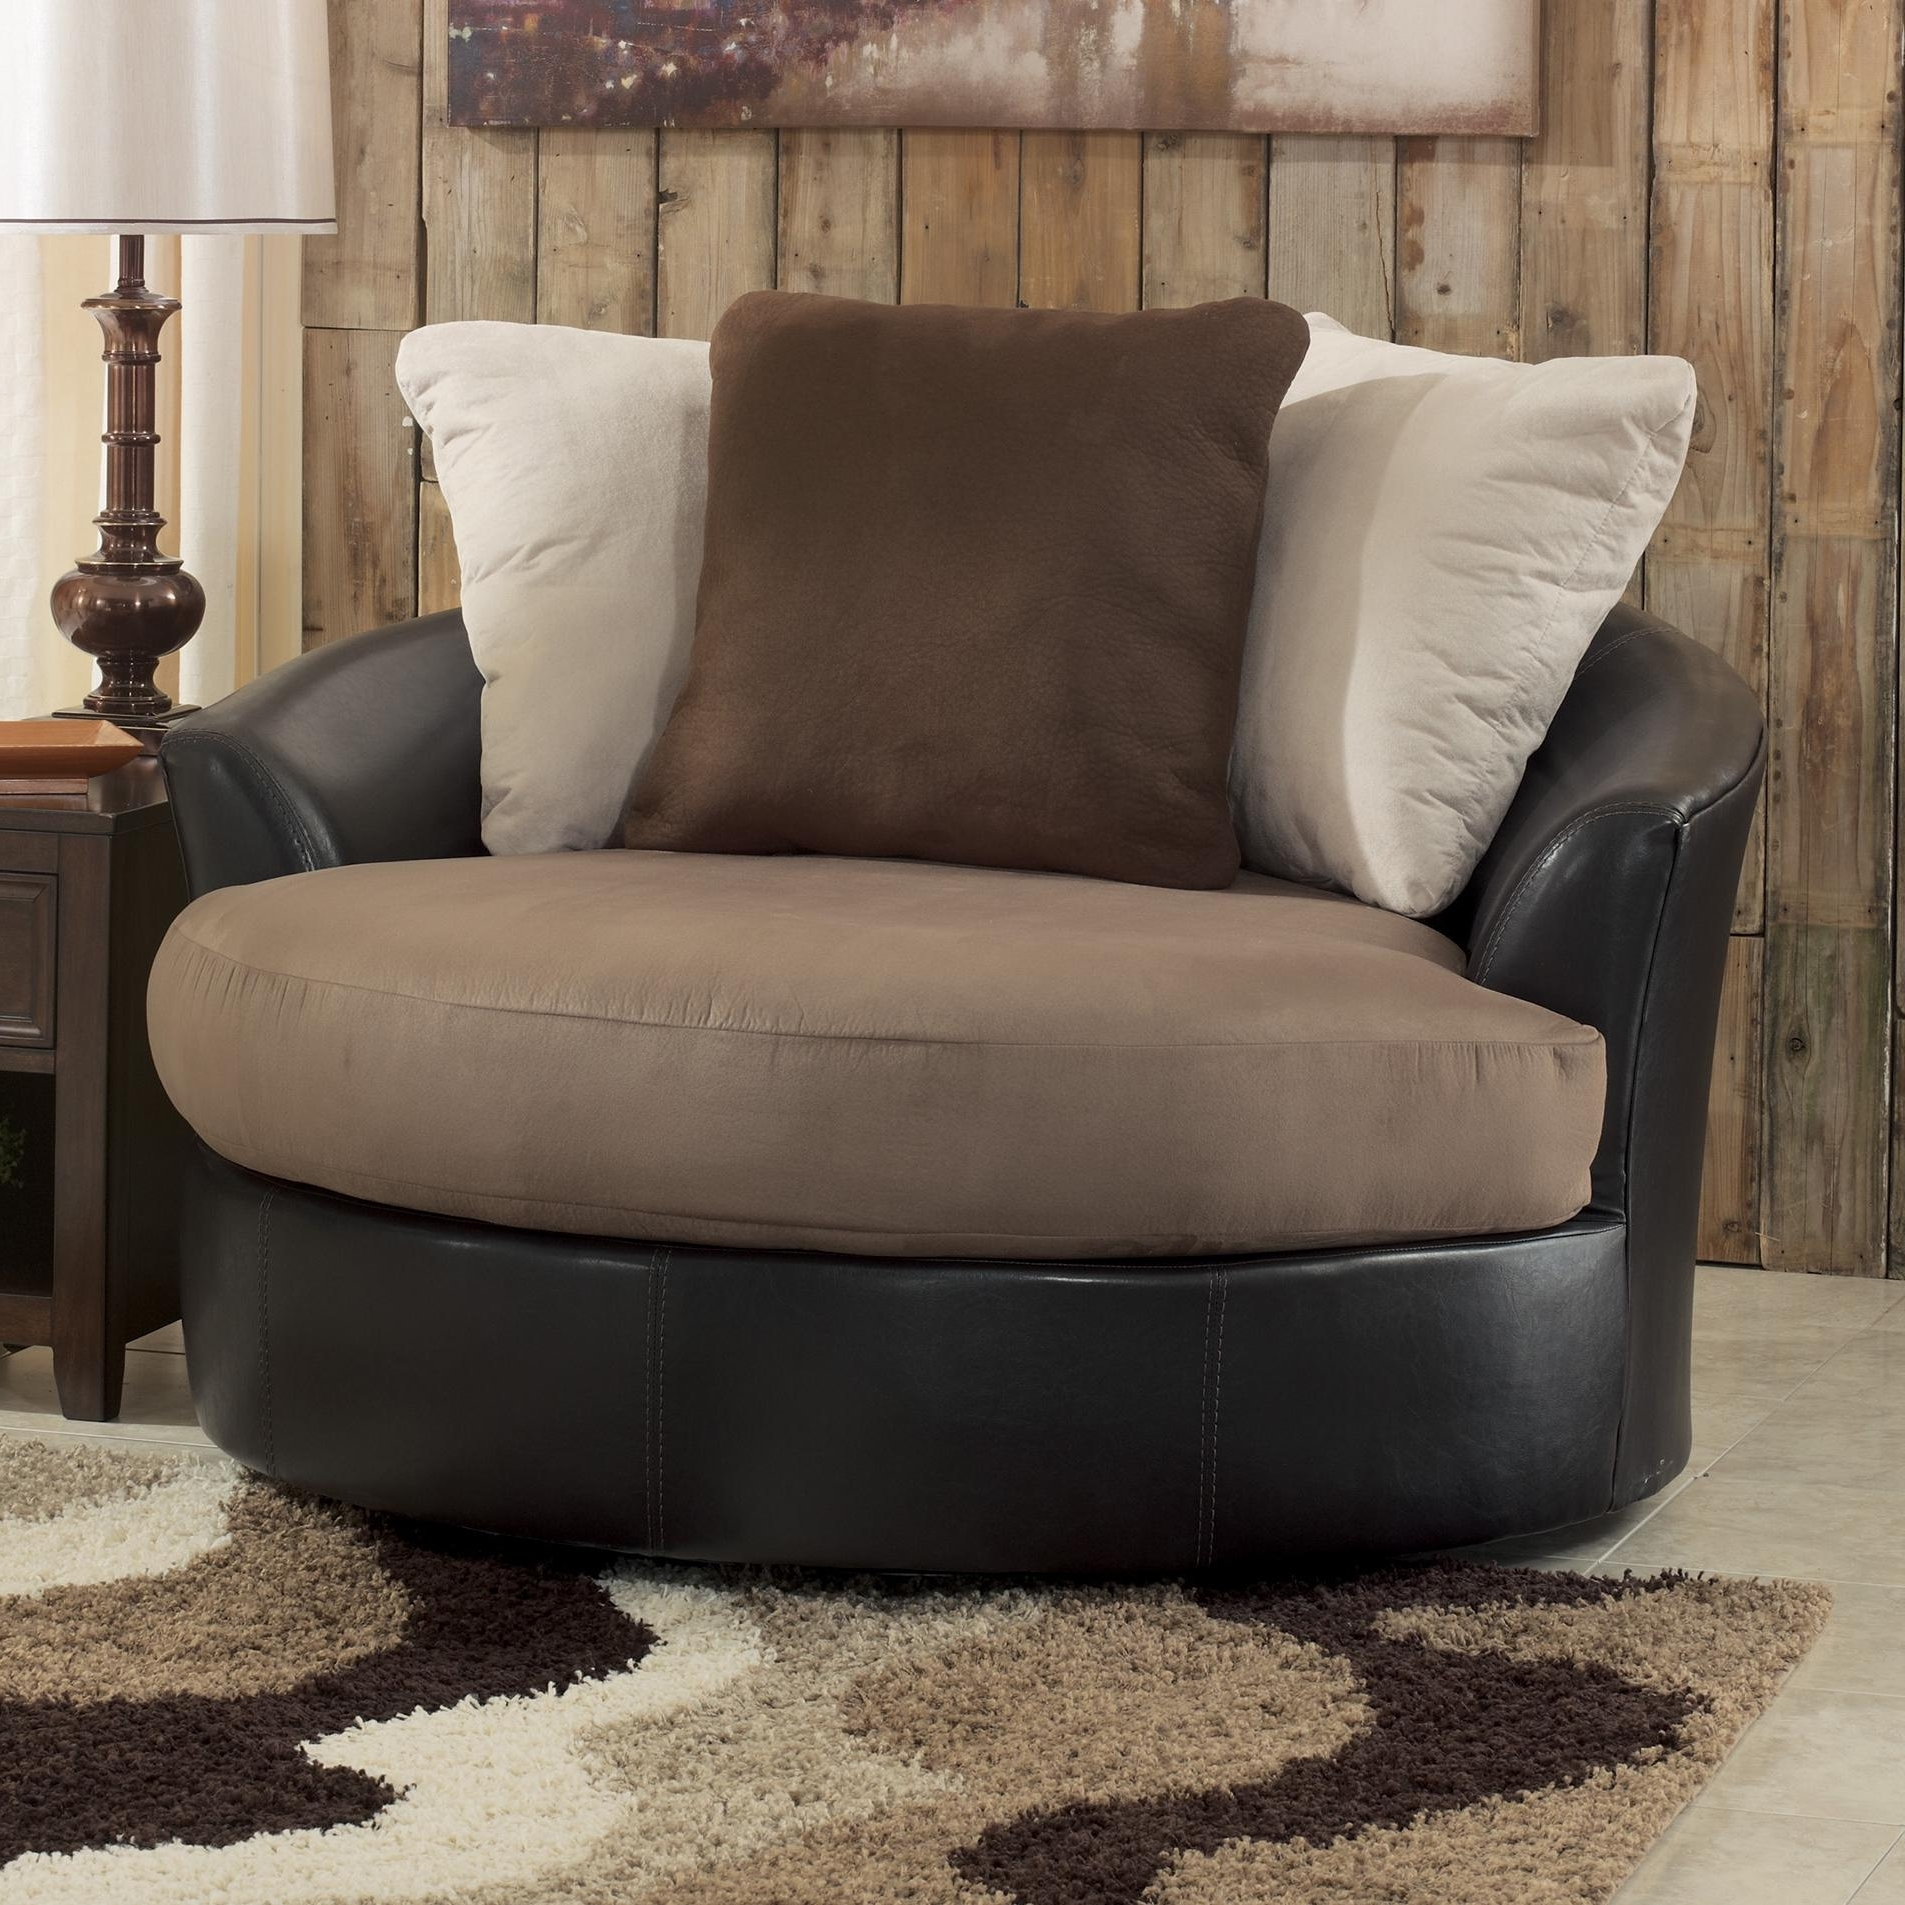 Large Sofa Chairs For Trendy Sofa : Excellent Round Sofa Chair Living Room Furniture Harveys (View 9 of 20)